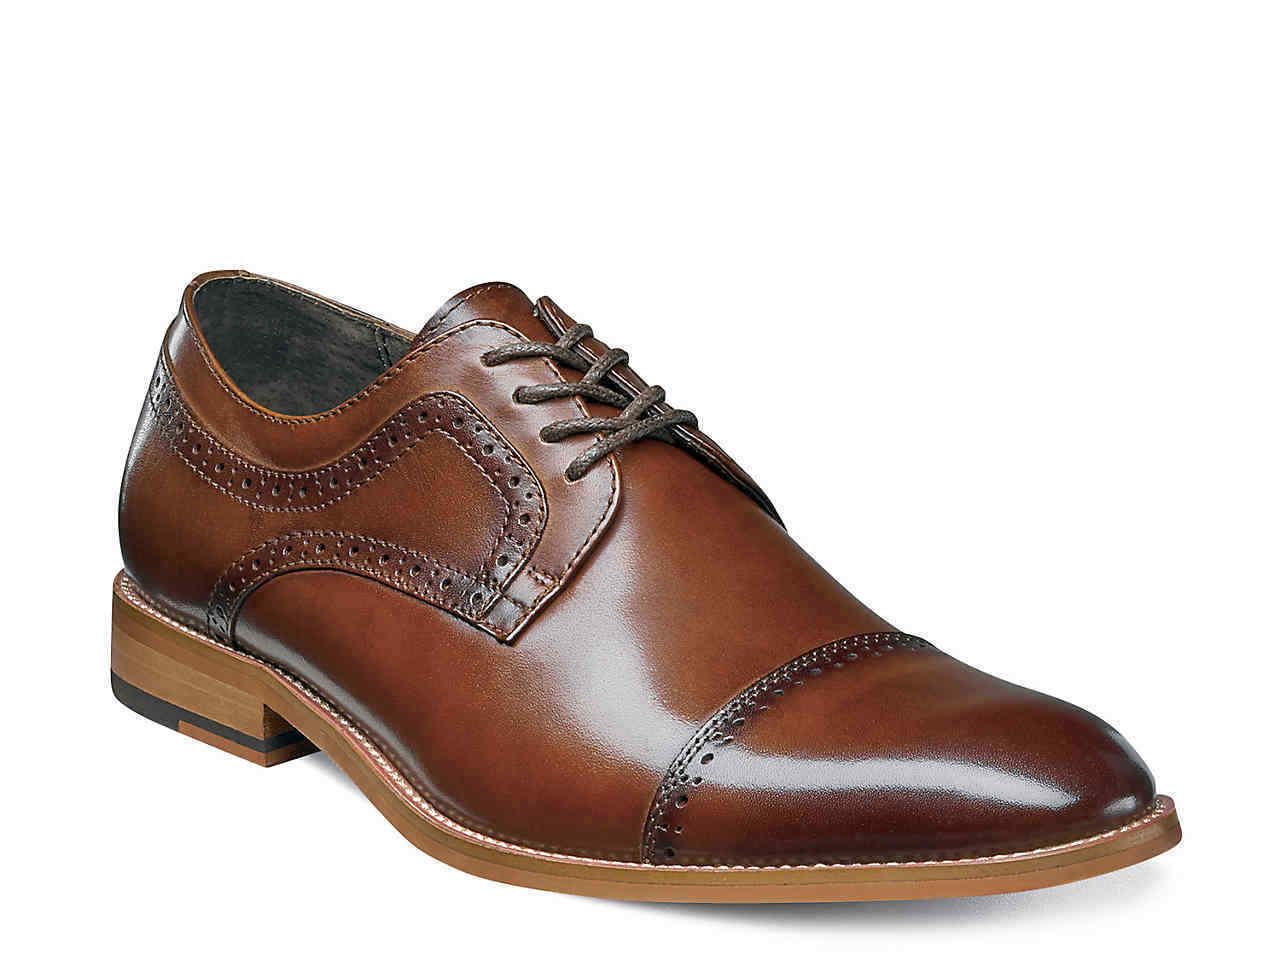 NEW - STACY ADAMS Men's 'DICKINSON' Brown CAP TOE OXFORD SHOES  -  10.5 W